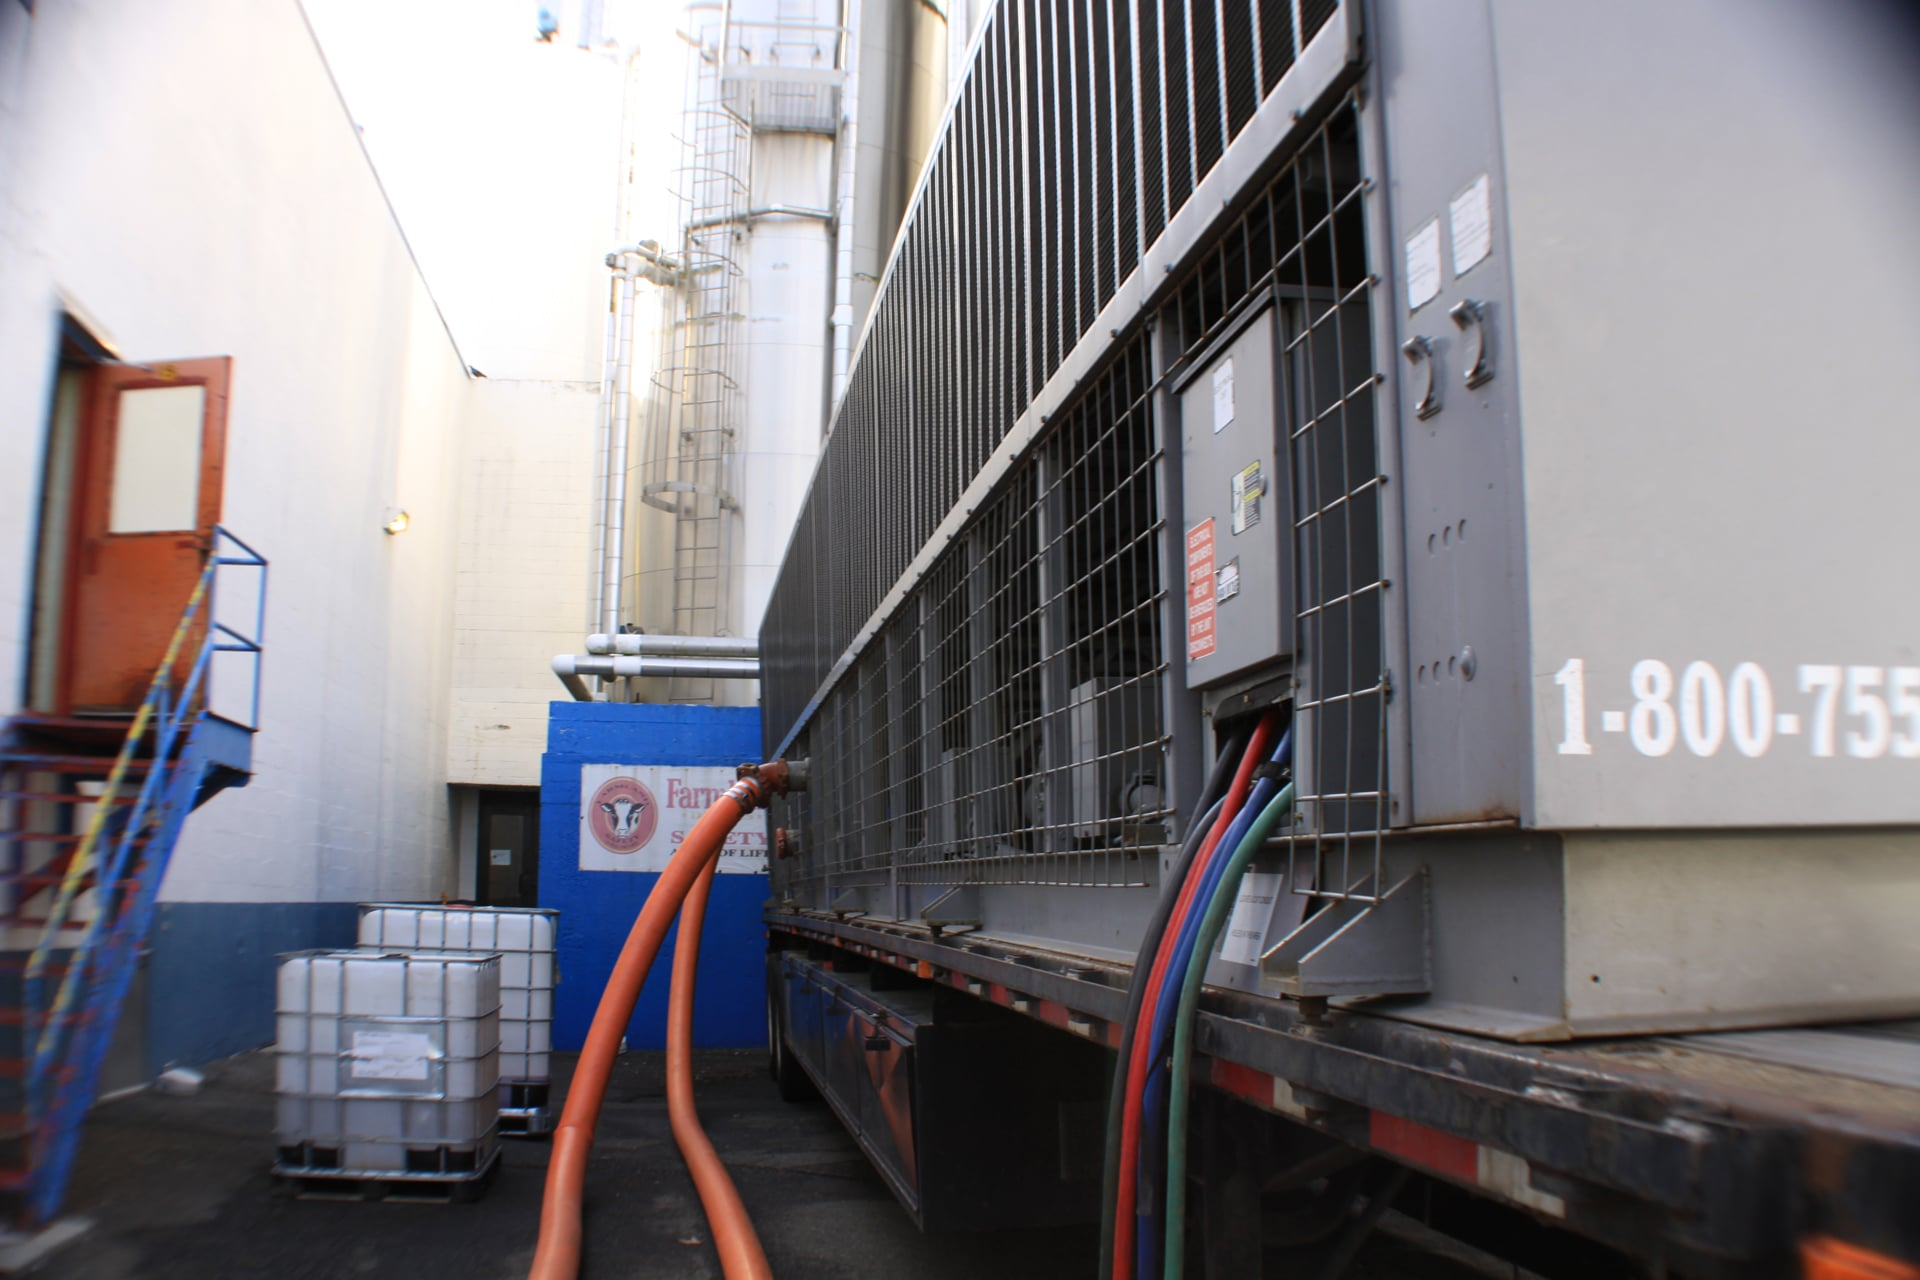 Temporary Chiller Washington County PA, Air Cooled Chiller Rental Washington County PA